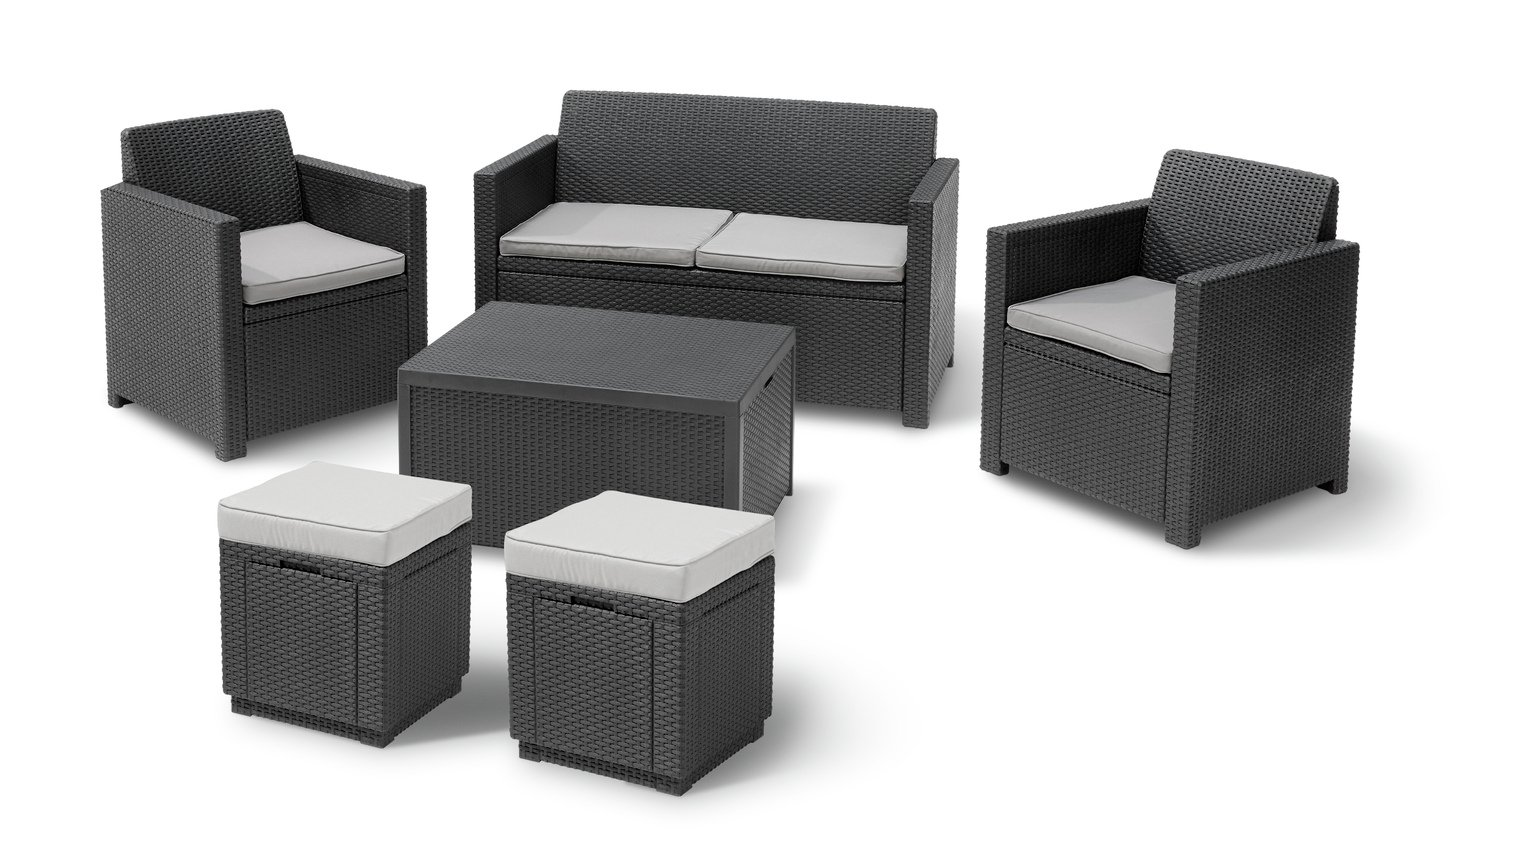 Rattan Sofa Set With Storage Keter Merano 6 Seater Rattan Effect Sofa Set With Storage